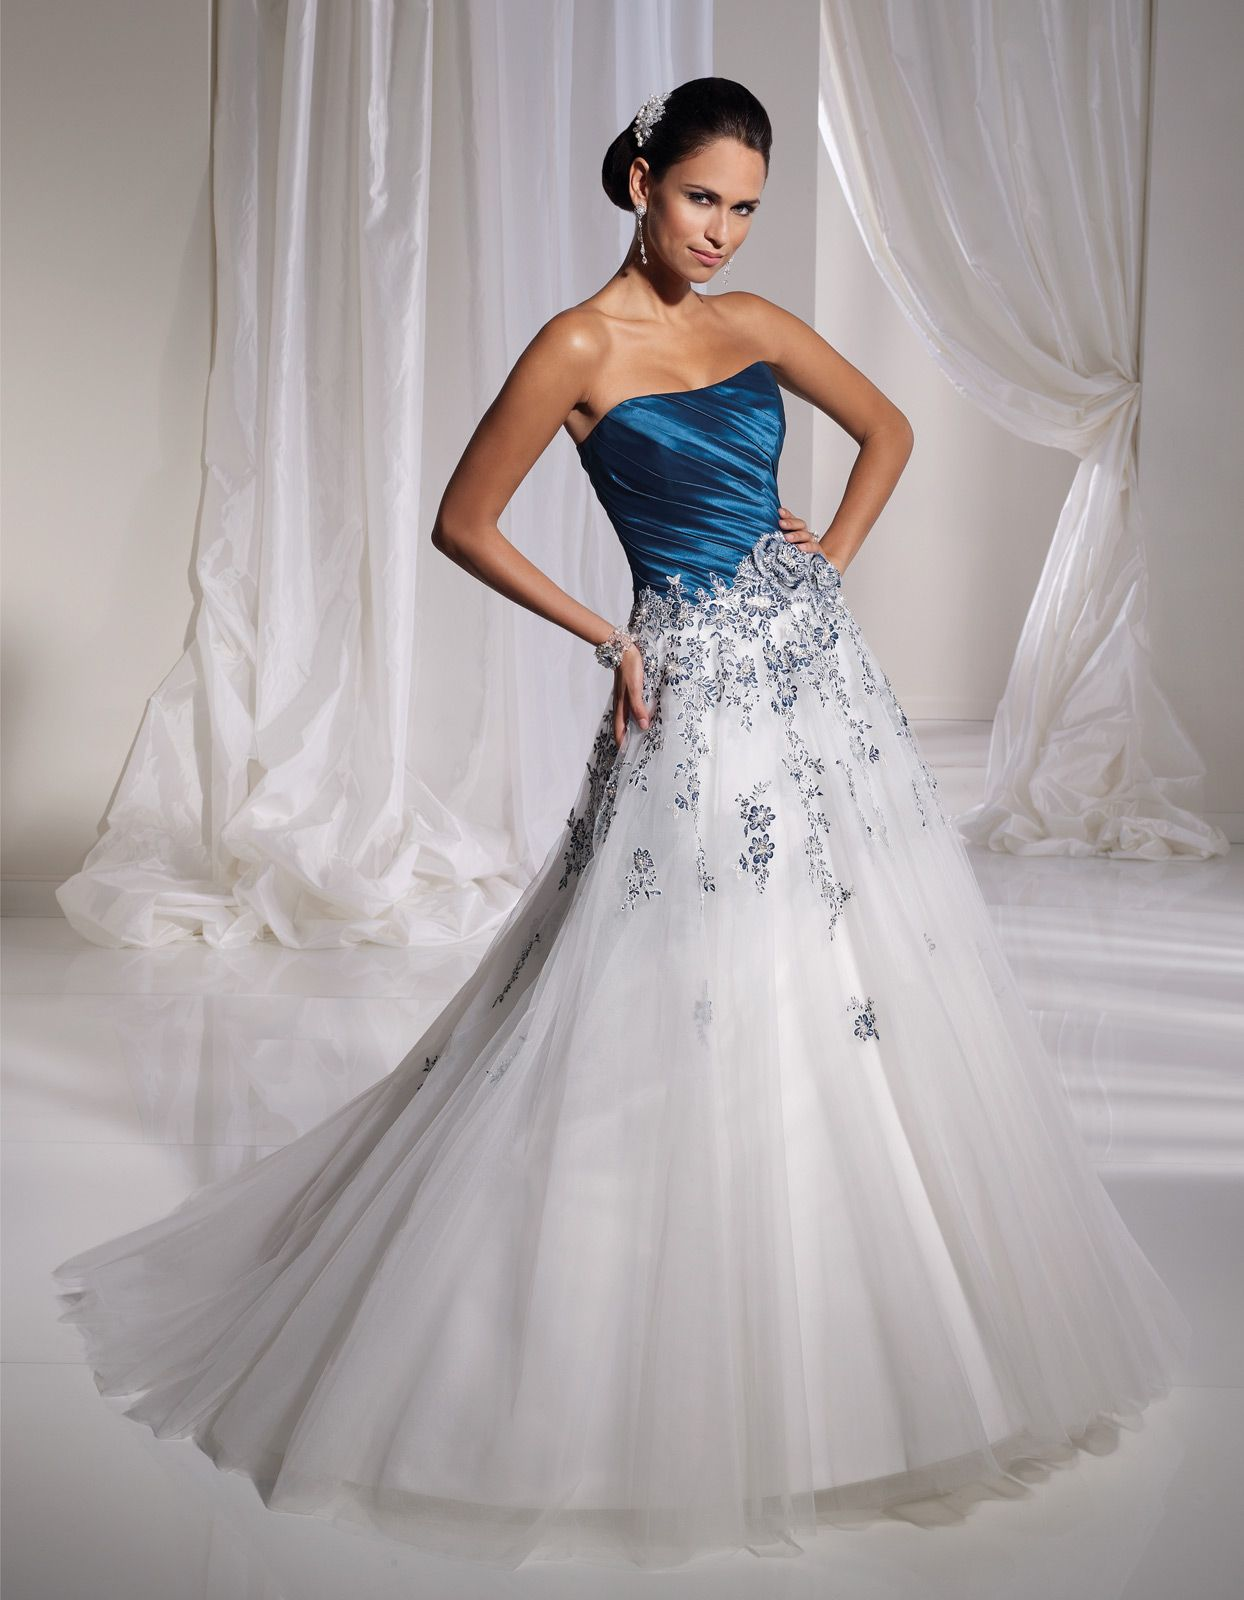 This is soooo different! Love the color =) Designer Wedding Dresses ...